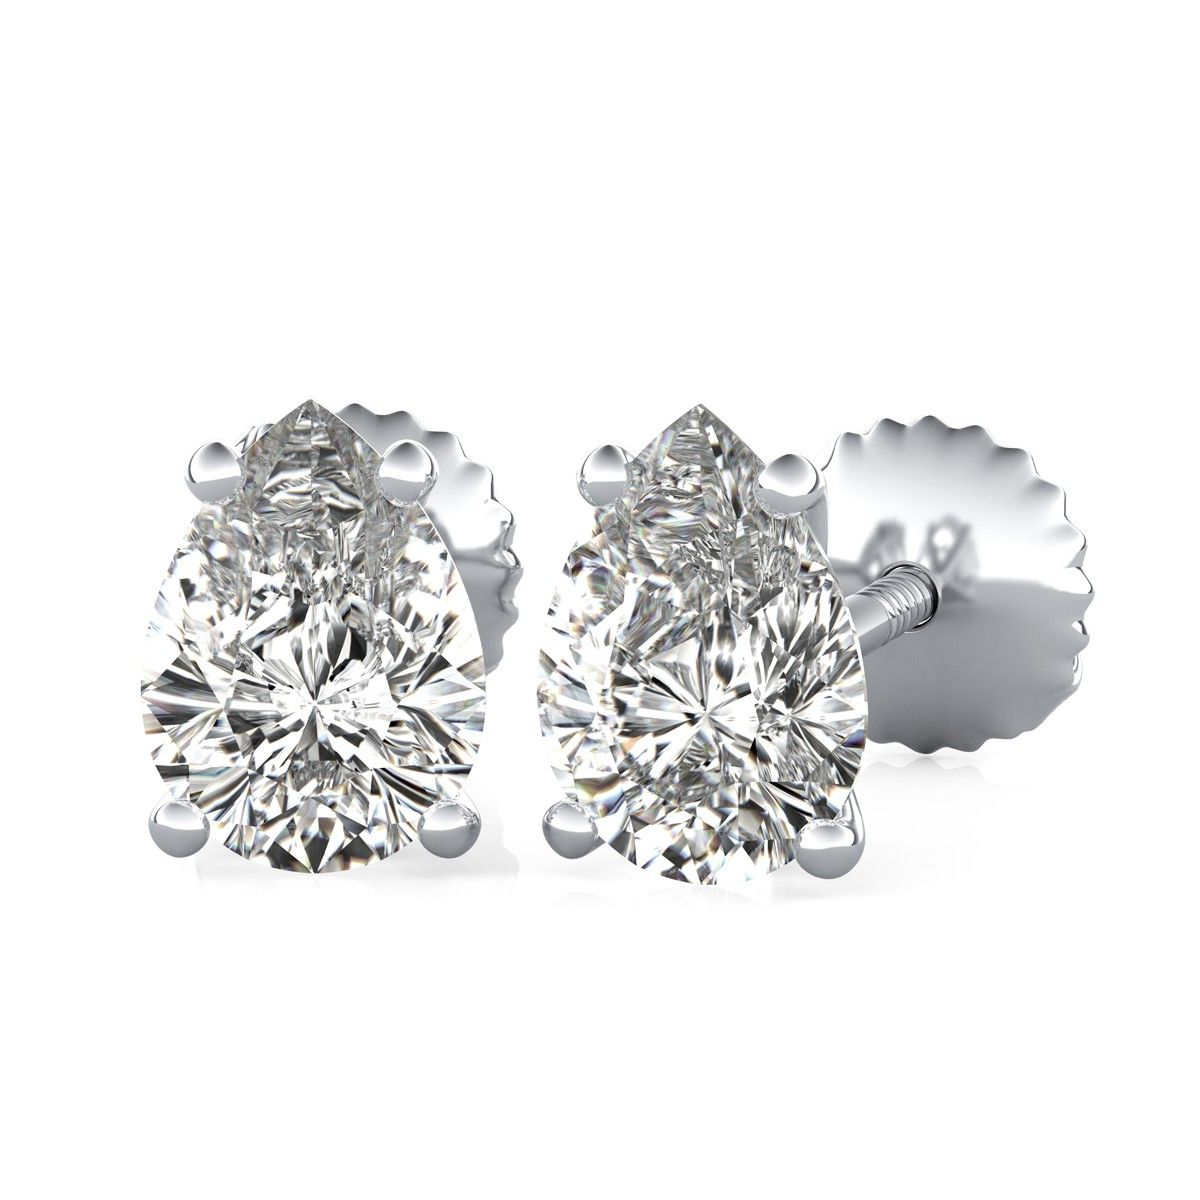 Four-Prong Stud Earrings with Pear Cut Diamonds by 90210Jewelry.com ❤